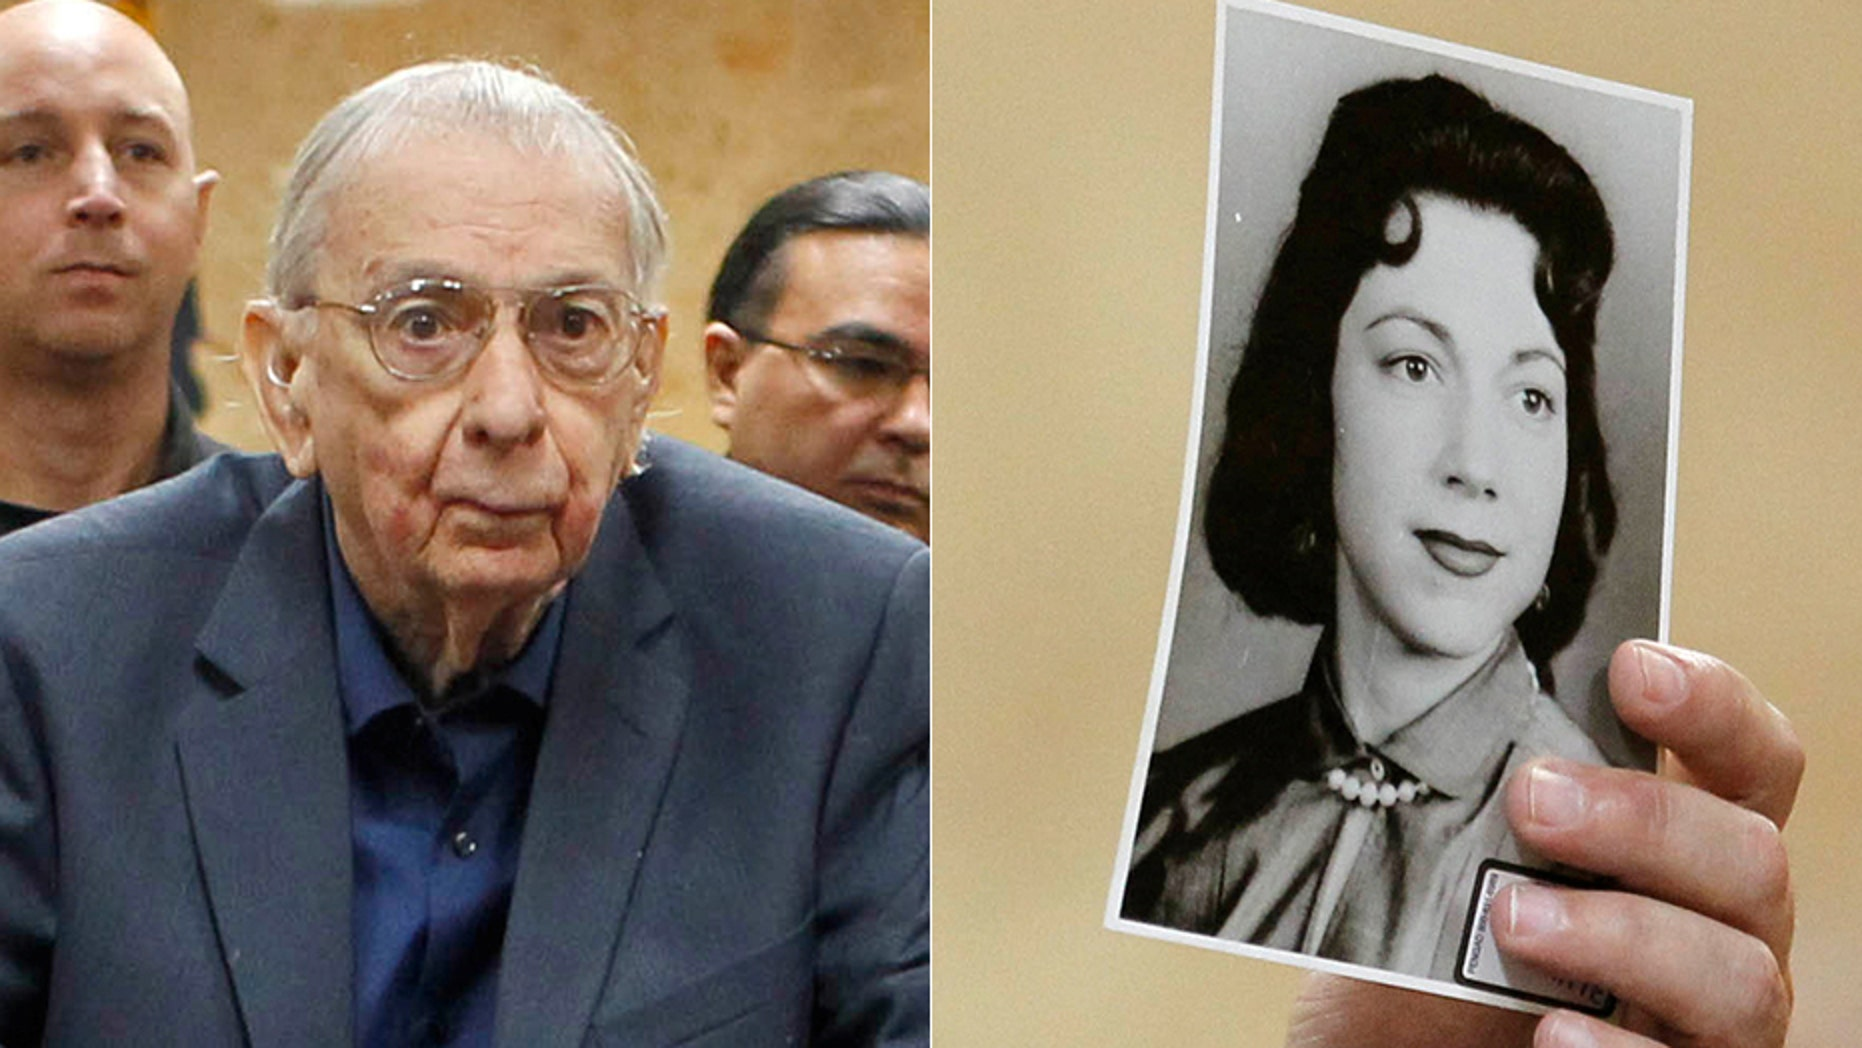 Former priest John Feit was convicted of murdering Irene Garza, whose photo was displayed in court.